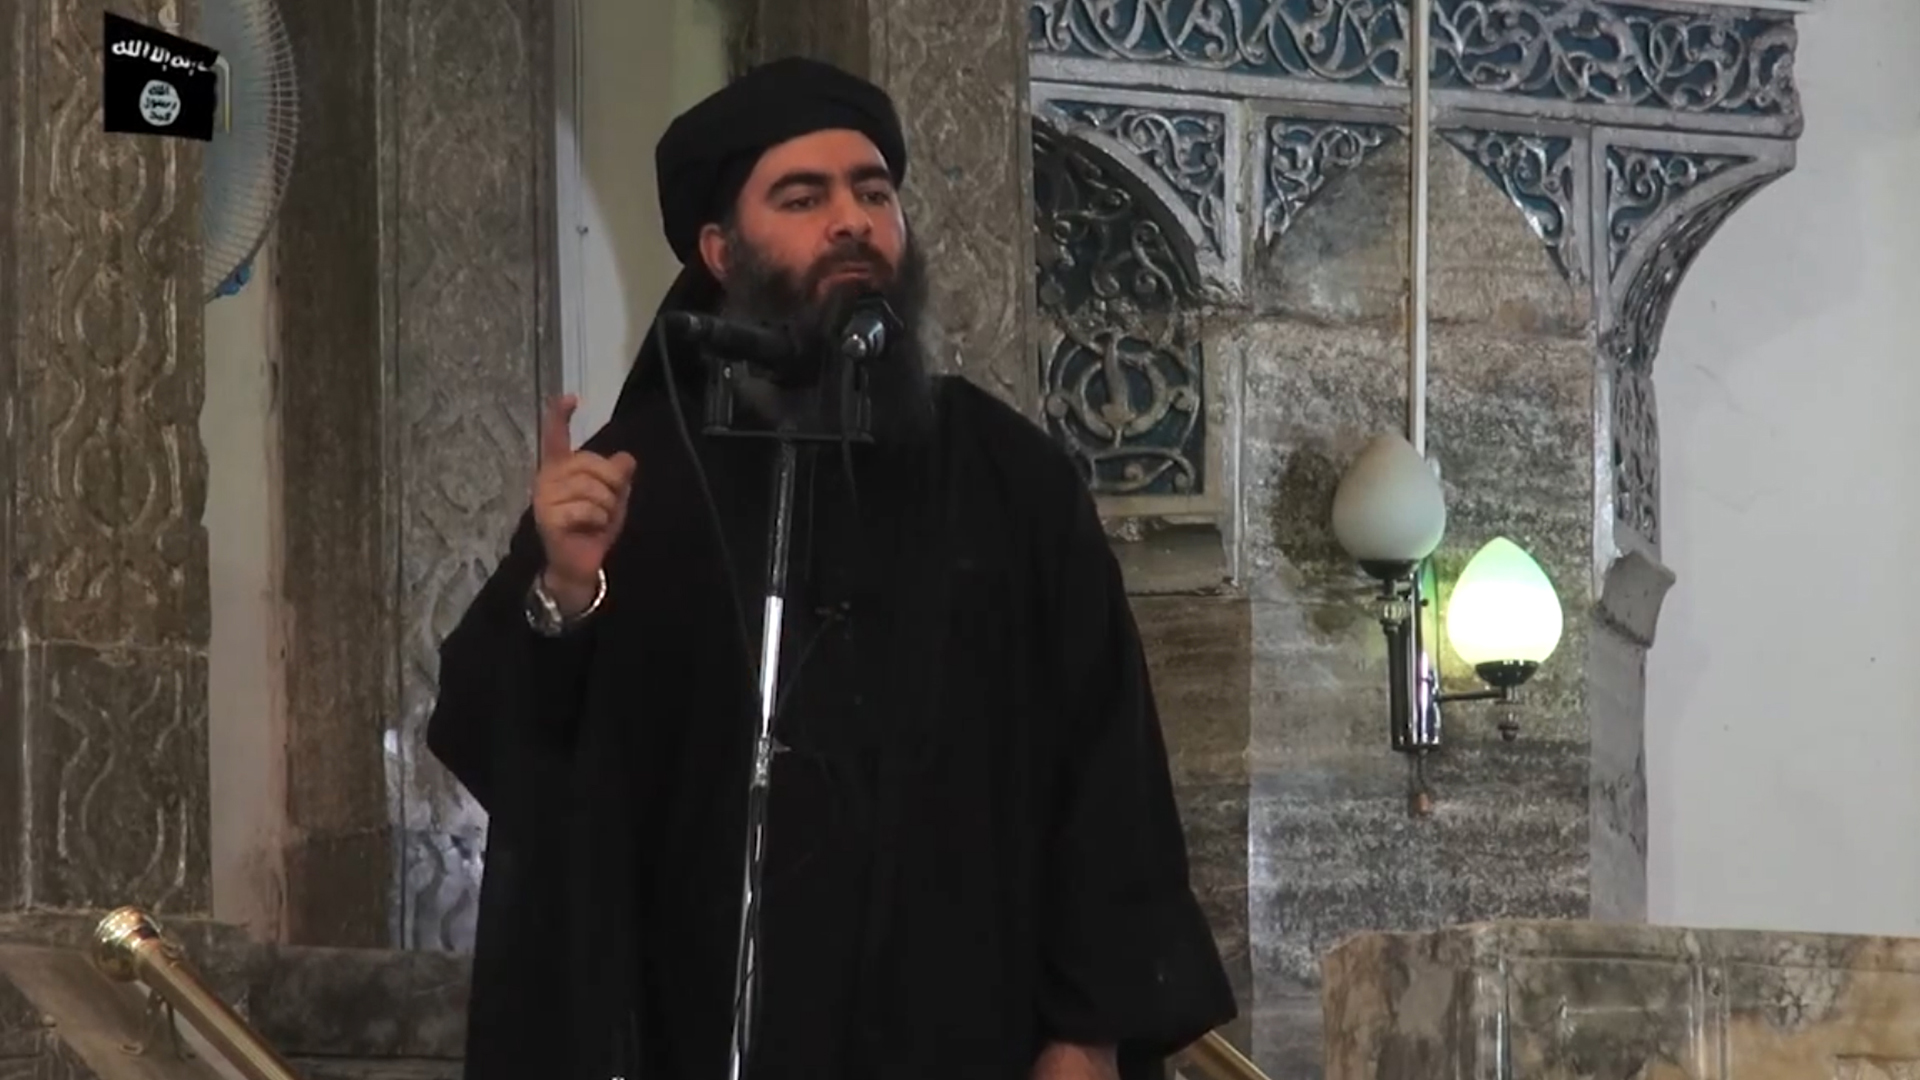 In this file picture taken on July 5, 2014, an image grab taken from a propaganda video released by al-Furqan Media allegedly shows the leader of the Islamic State (IS) jihadist group, Abu Bakr al-Baghdadi, aka Caliph Ibrahim, addressing Muslim worshippers at a mosque in the militant-held northern Iraqi city of Mosul. (Credit: AFP/Getty Images)